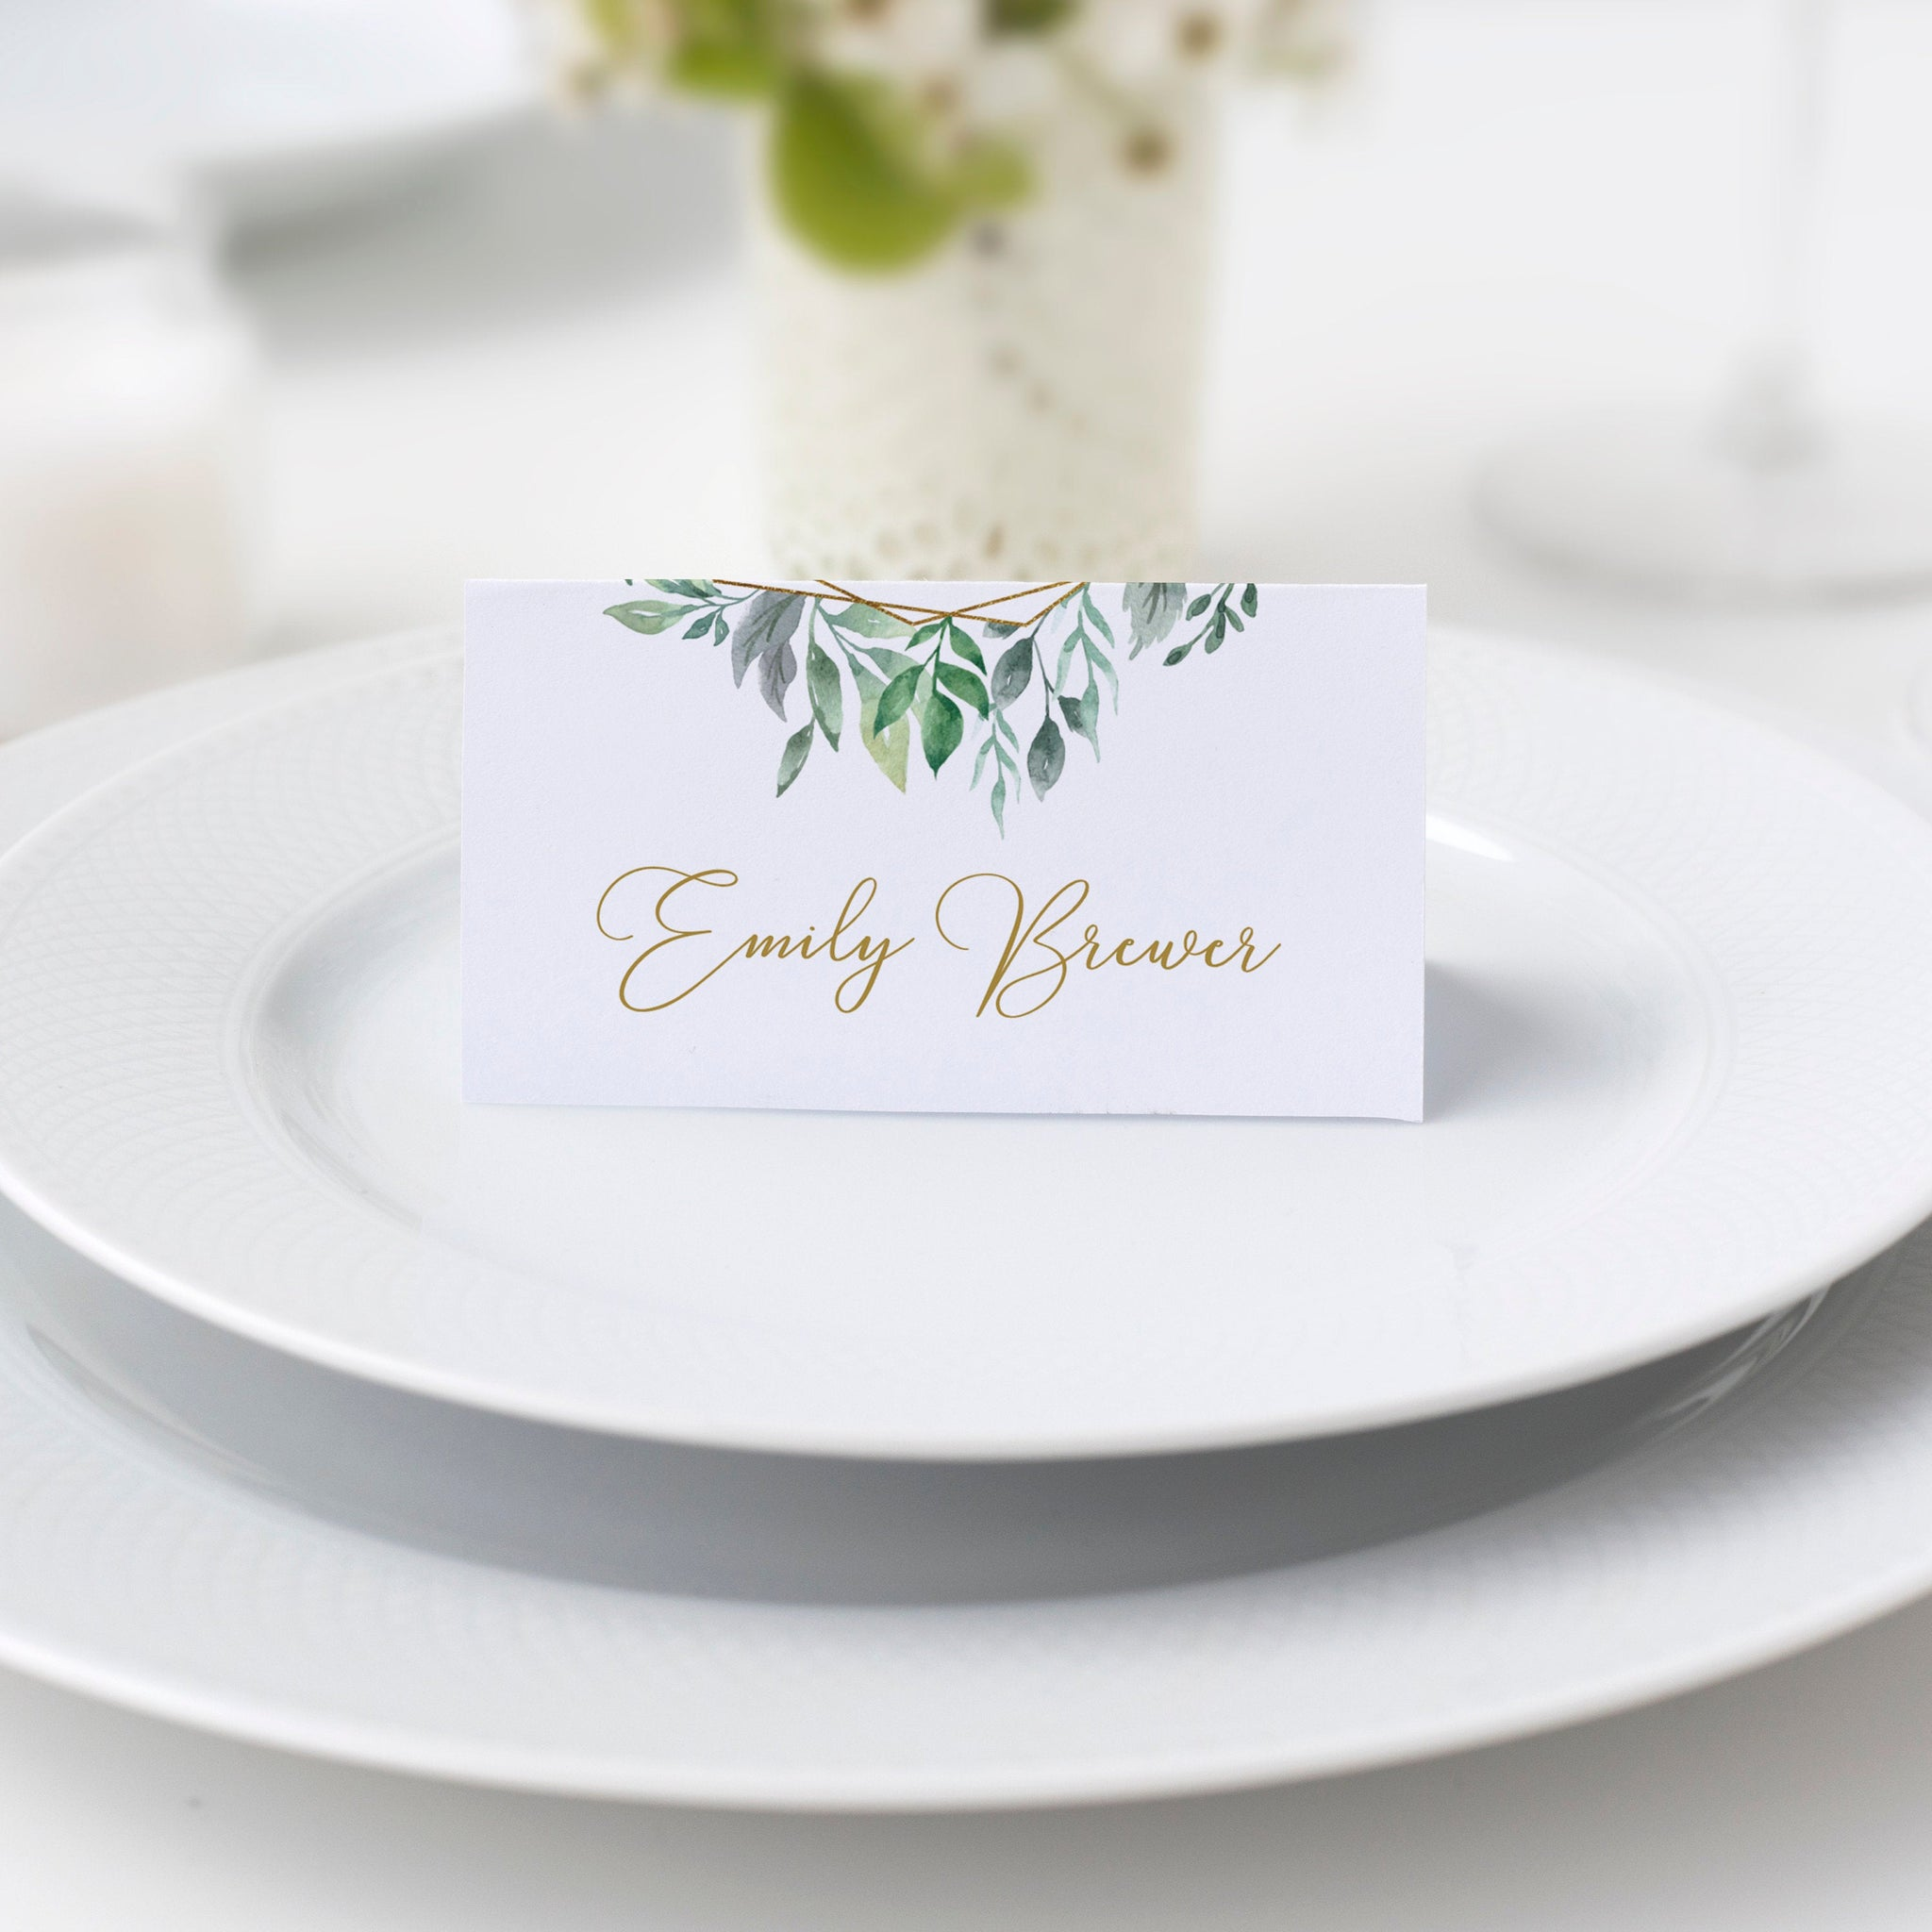 Greenery Wedding Place Card Template, Wedding Name Cards, Editable Printable Place Cards, DIGITAL DOWNLOAD - GFG100 - @PlumPolkaDot